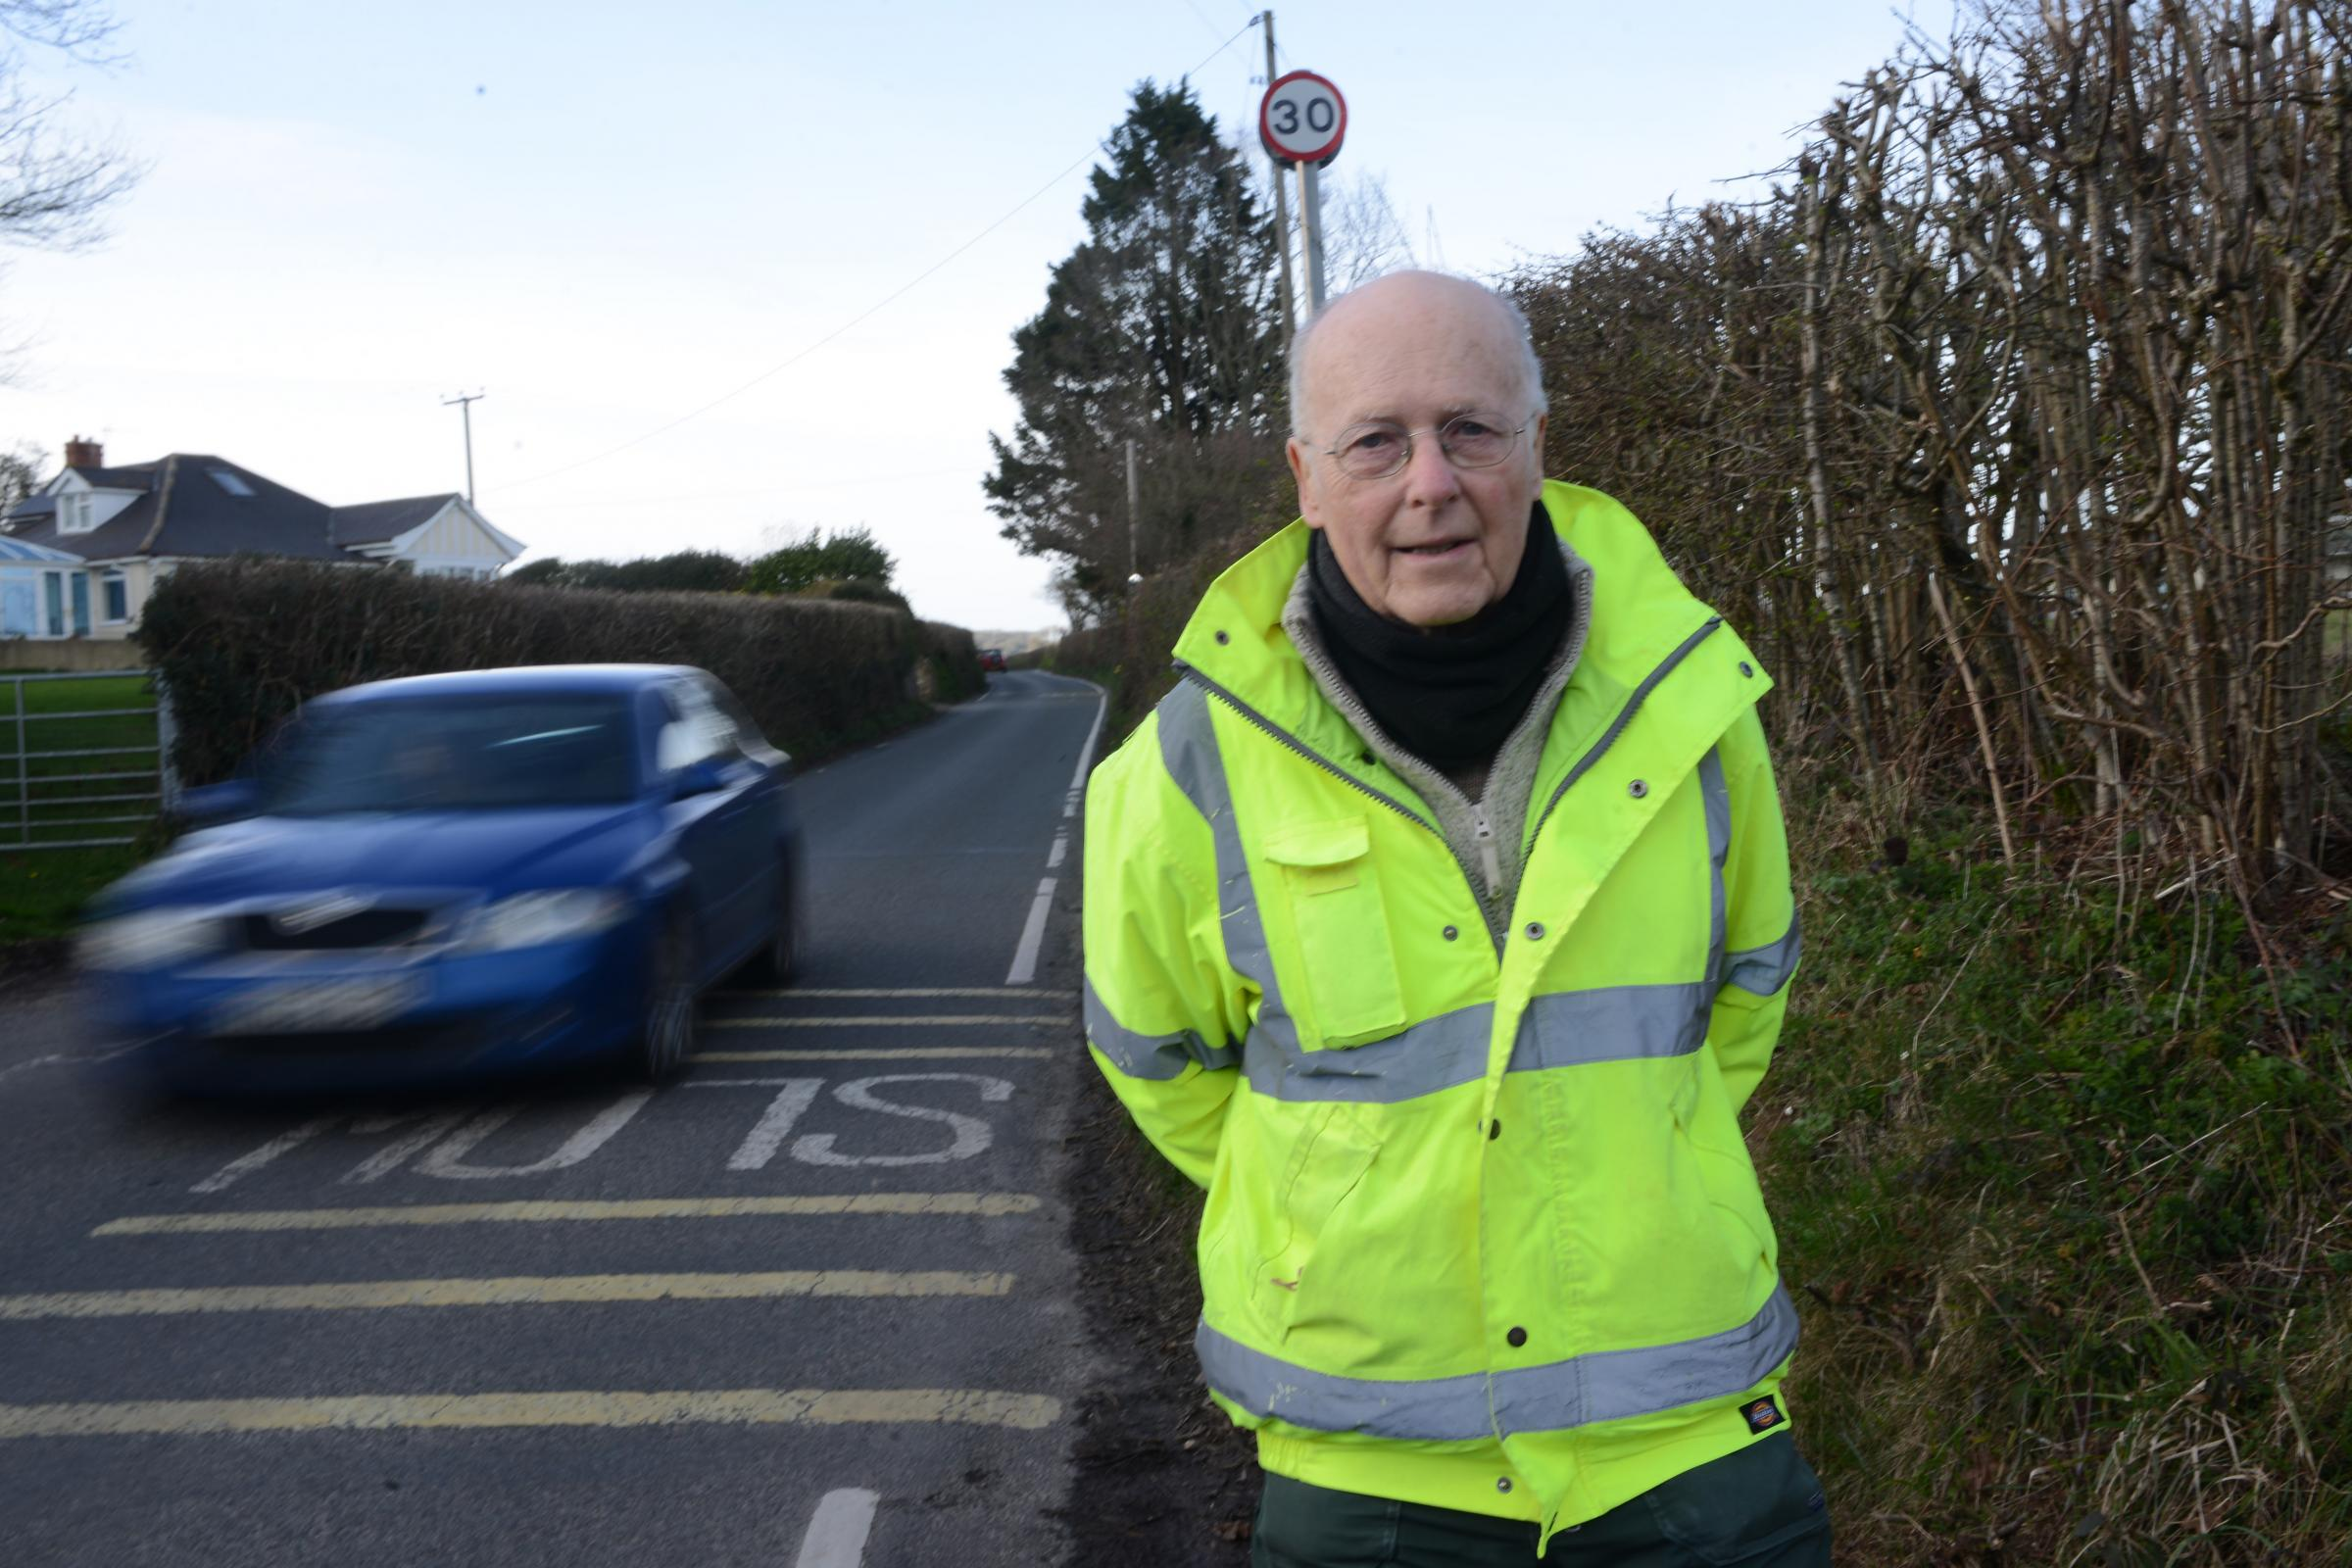 CAMPAIGNING: Cllr Andrew Turpin pictured in Forton, where road users have been losing wing mirrors